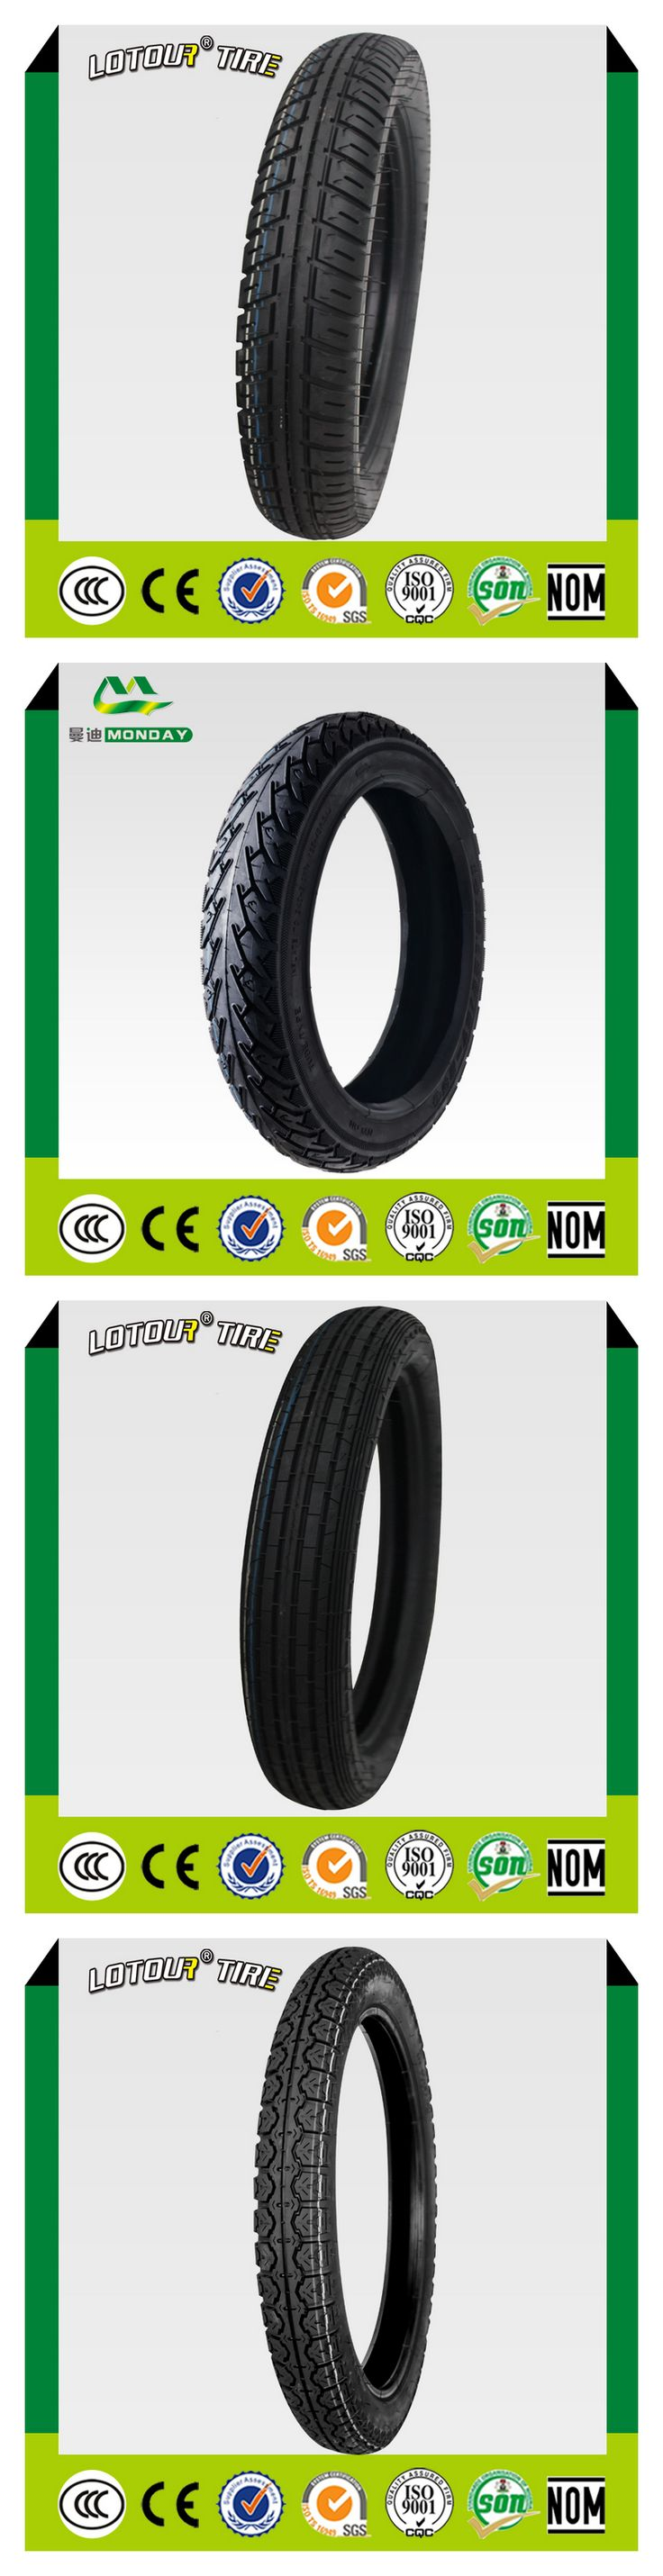 Lotour new motorcycle tire is for sale.We have various patterns.For more detail,please contact me:+8618560450116 Whatsapp:+8618560450116 E-mail:janice@mondaytyre.com Website:www.mondaytyre.com